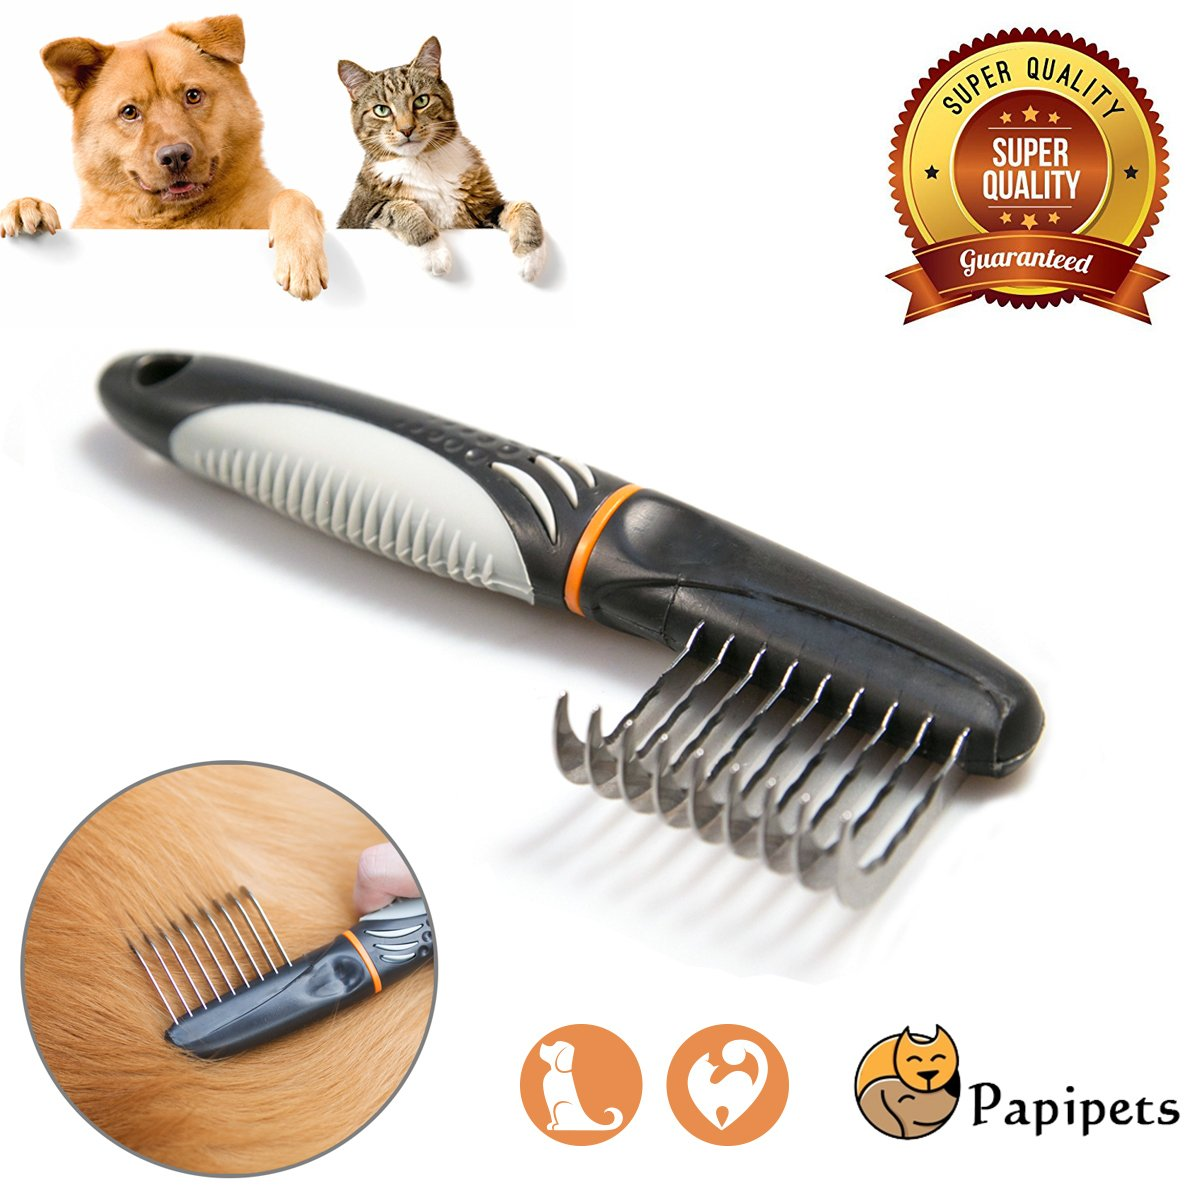 Papipets Pet Hook Dematting Comb Tool with Rounded Steel Grooming Undercoat Rake Remove Matted Hair/Knots/Tangled Fur for Small/Medium/Large Pets